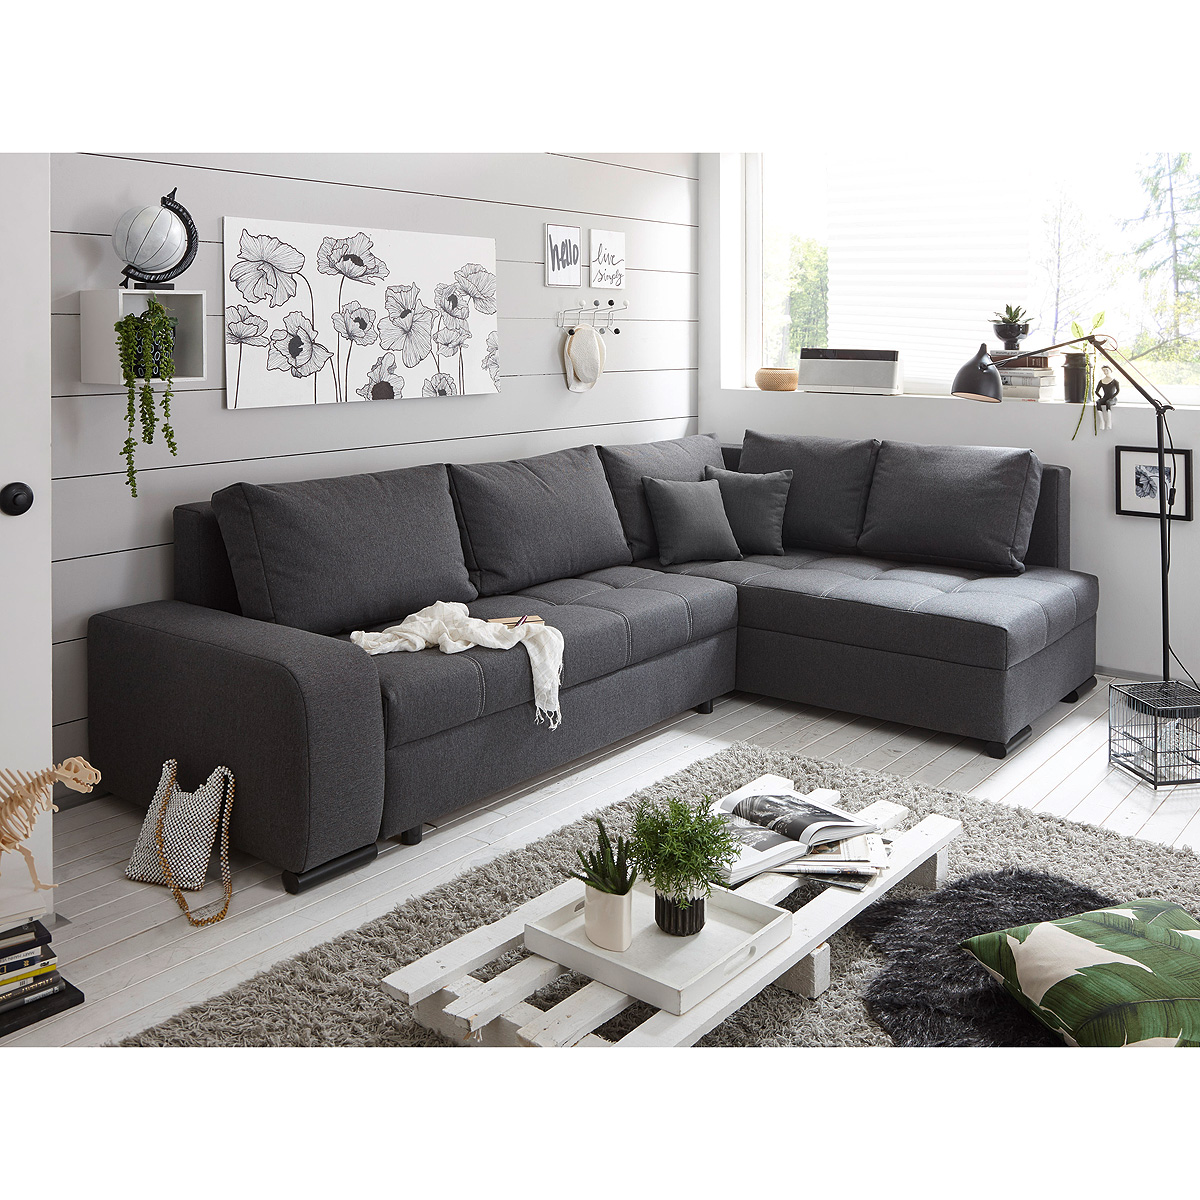 ecksofa lukas wohnlandschaft sofa polsterm bel in. Black Bedroom Furniture Sets. Home Design Ideas